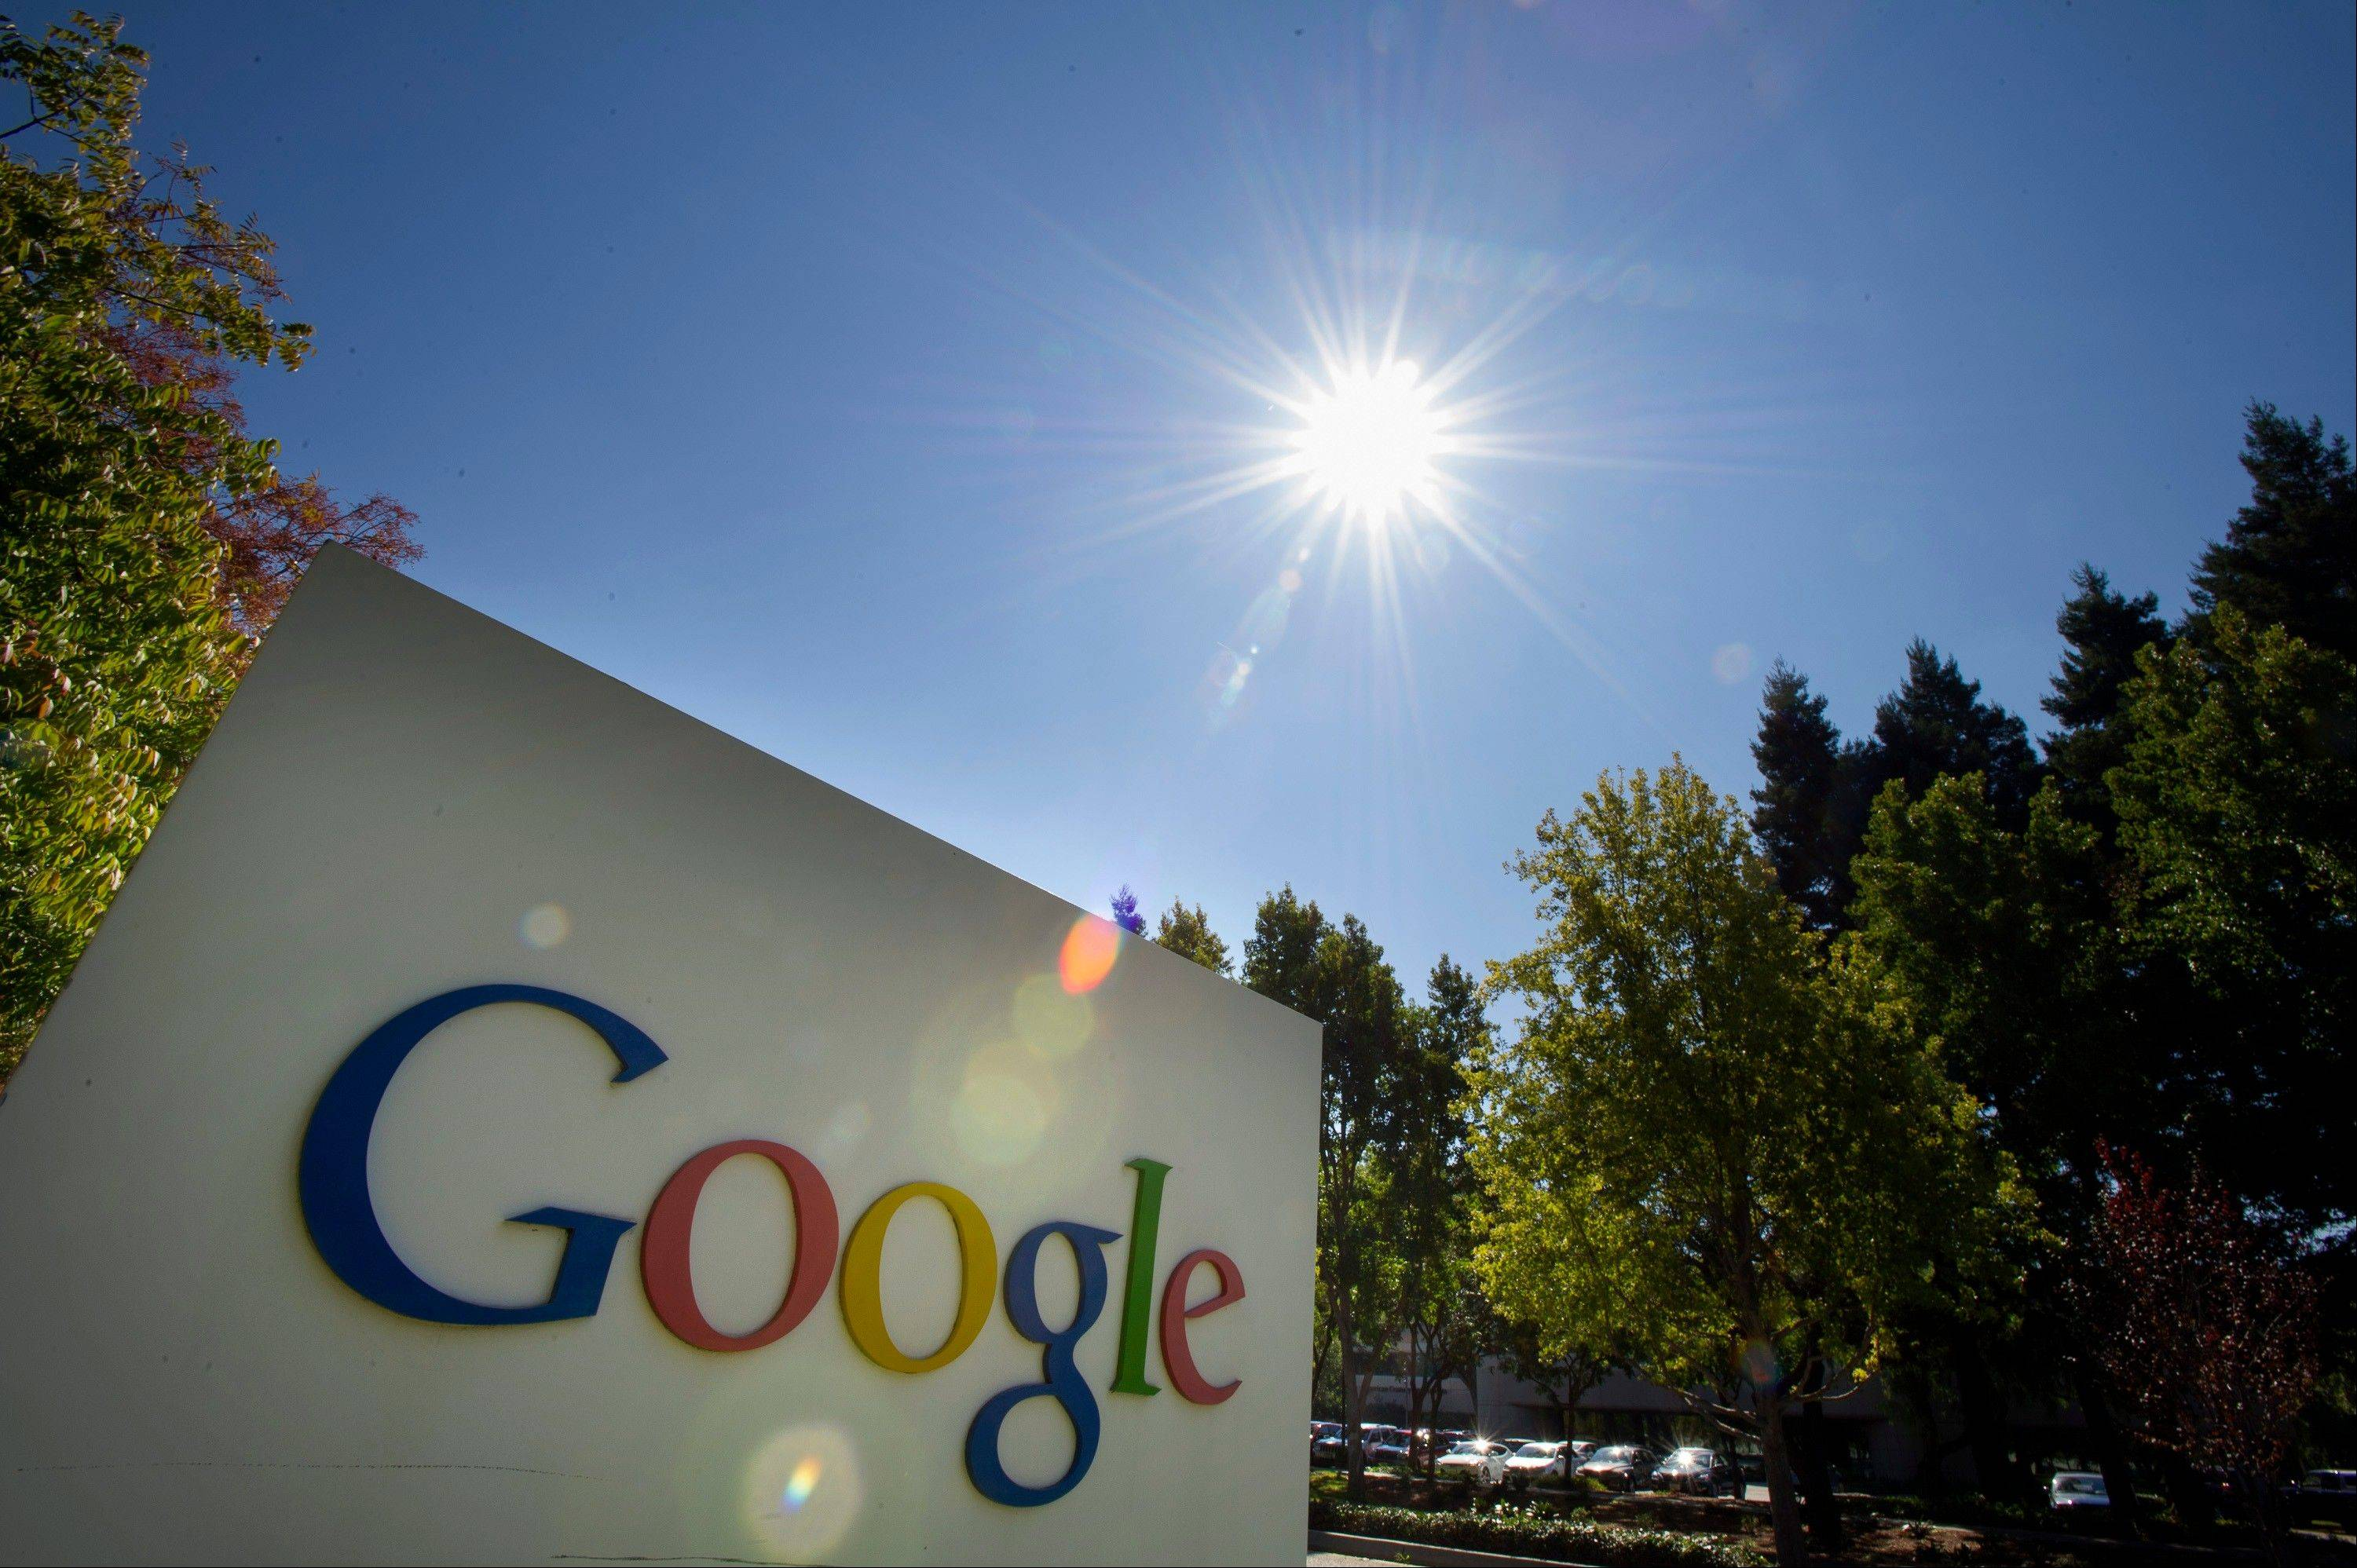 Google Inc. is adding to its range of artificial intelligence with the acquisition of DeepMind Technologies Ltd., a London-based startup founded by former chess prodigy and neuroscientist Demis Hassabis.